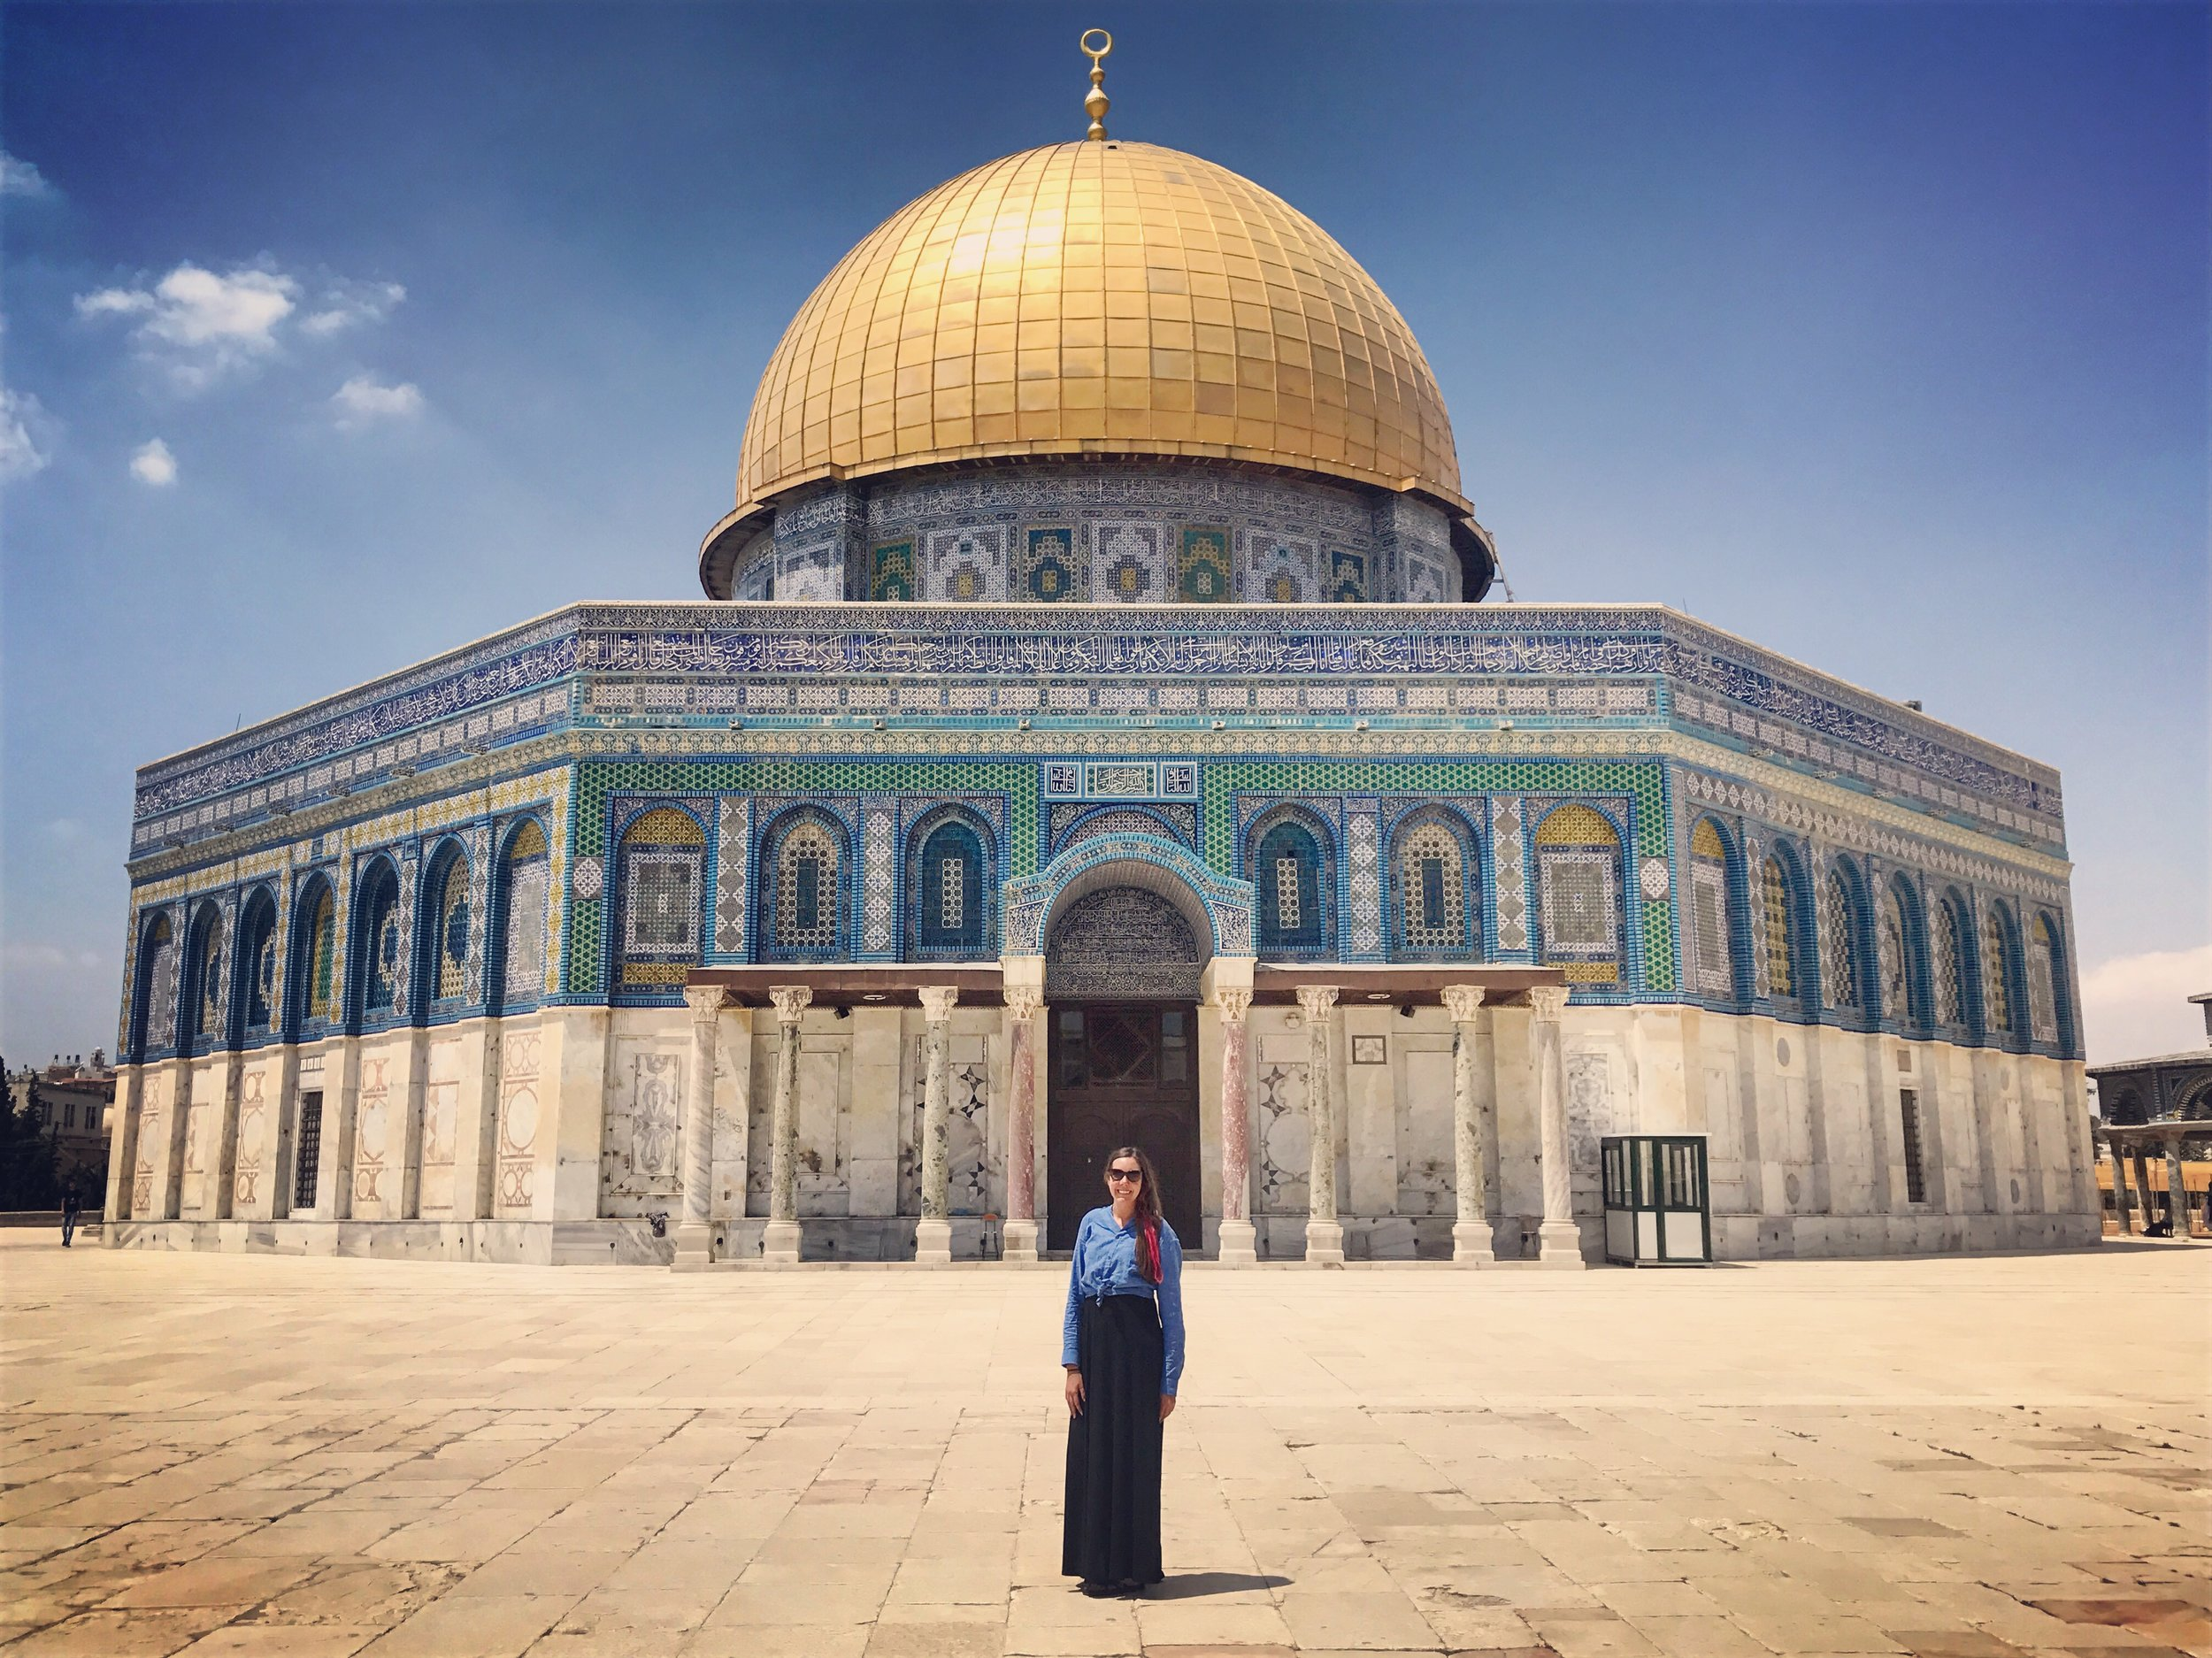 In front of the Dome of the Rock at the Noble Sanctuary compound in Jerusalem.